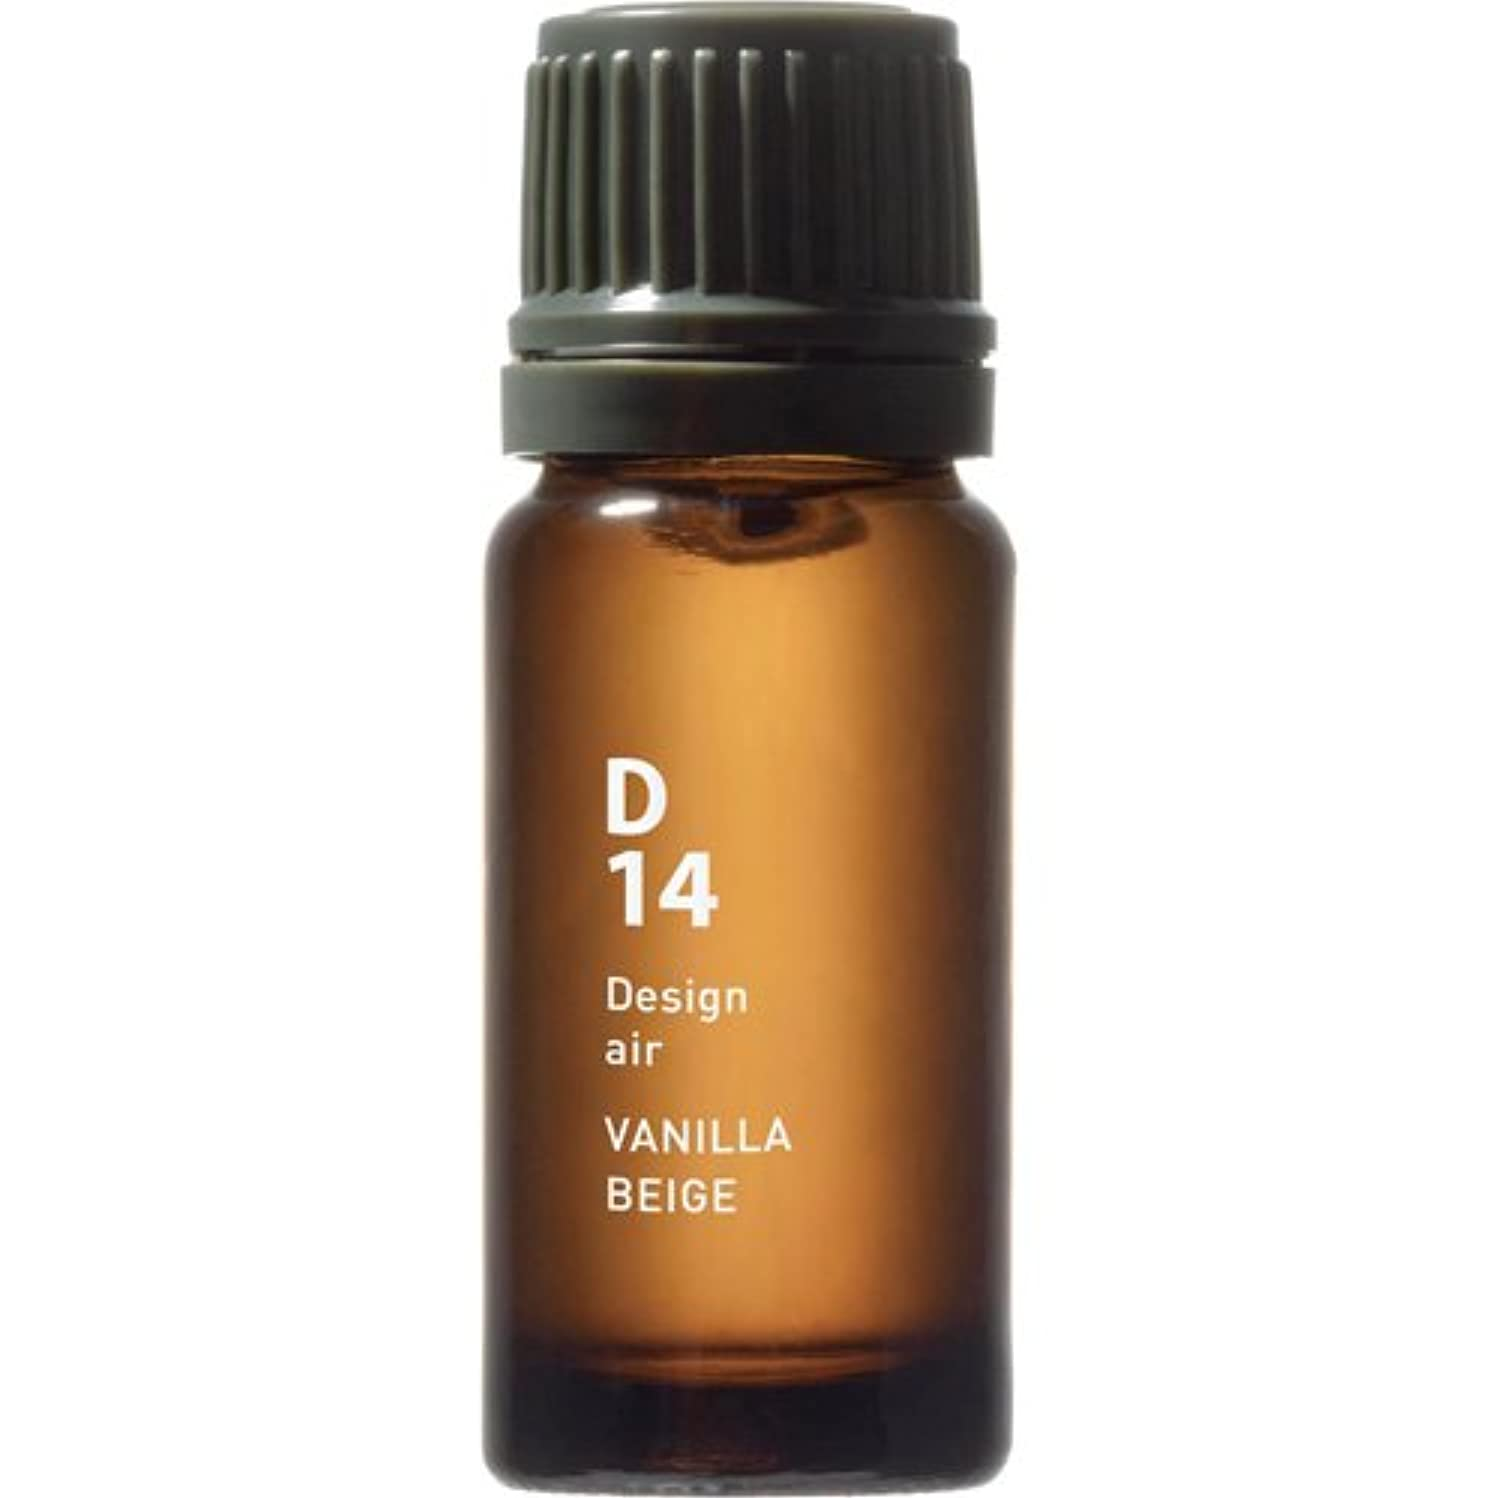 家庭教師鎮静剤粒D14 VANILLA BEIGE Design air 10ml